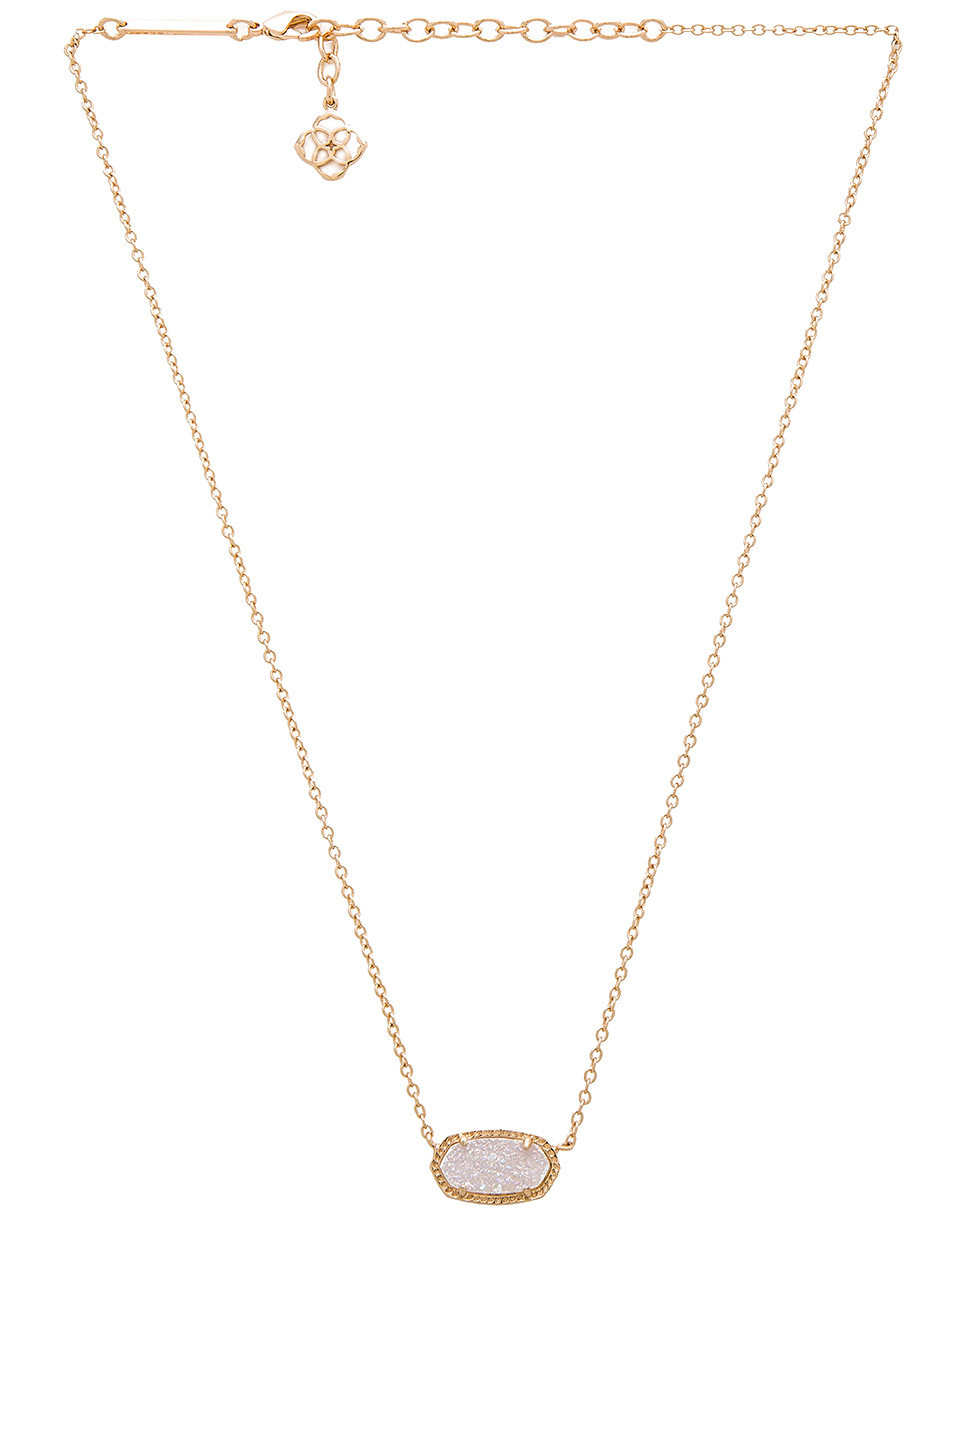 Kendra Scott Elisa Necklace in gold / metallic